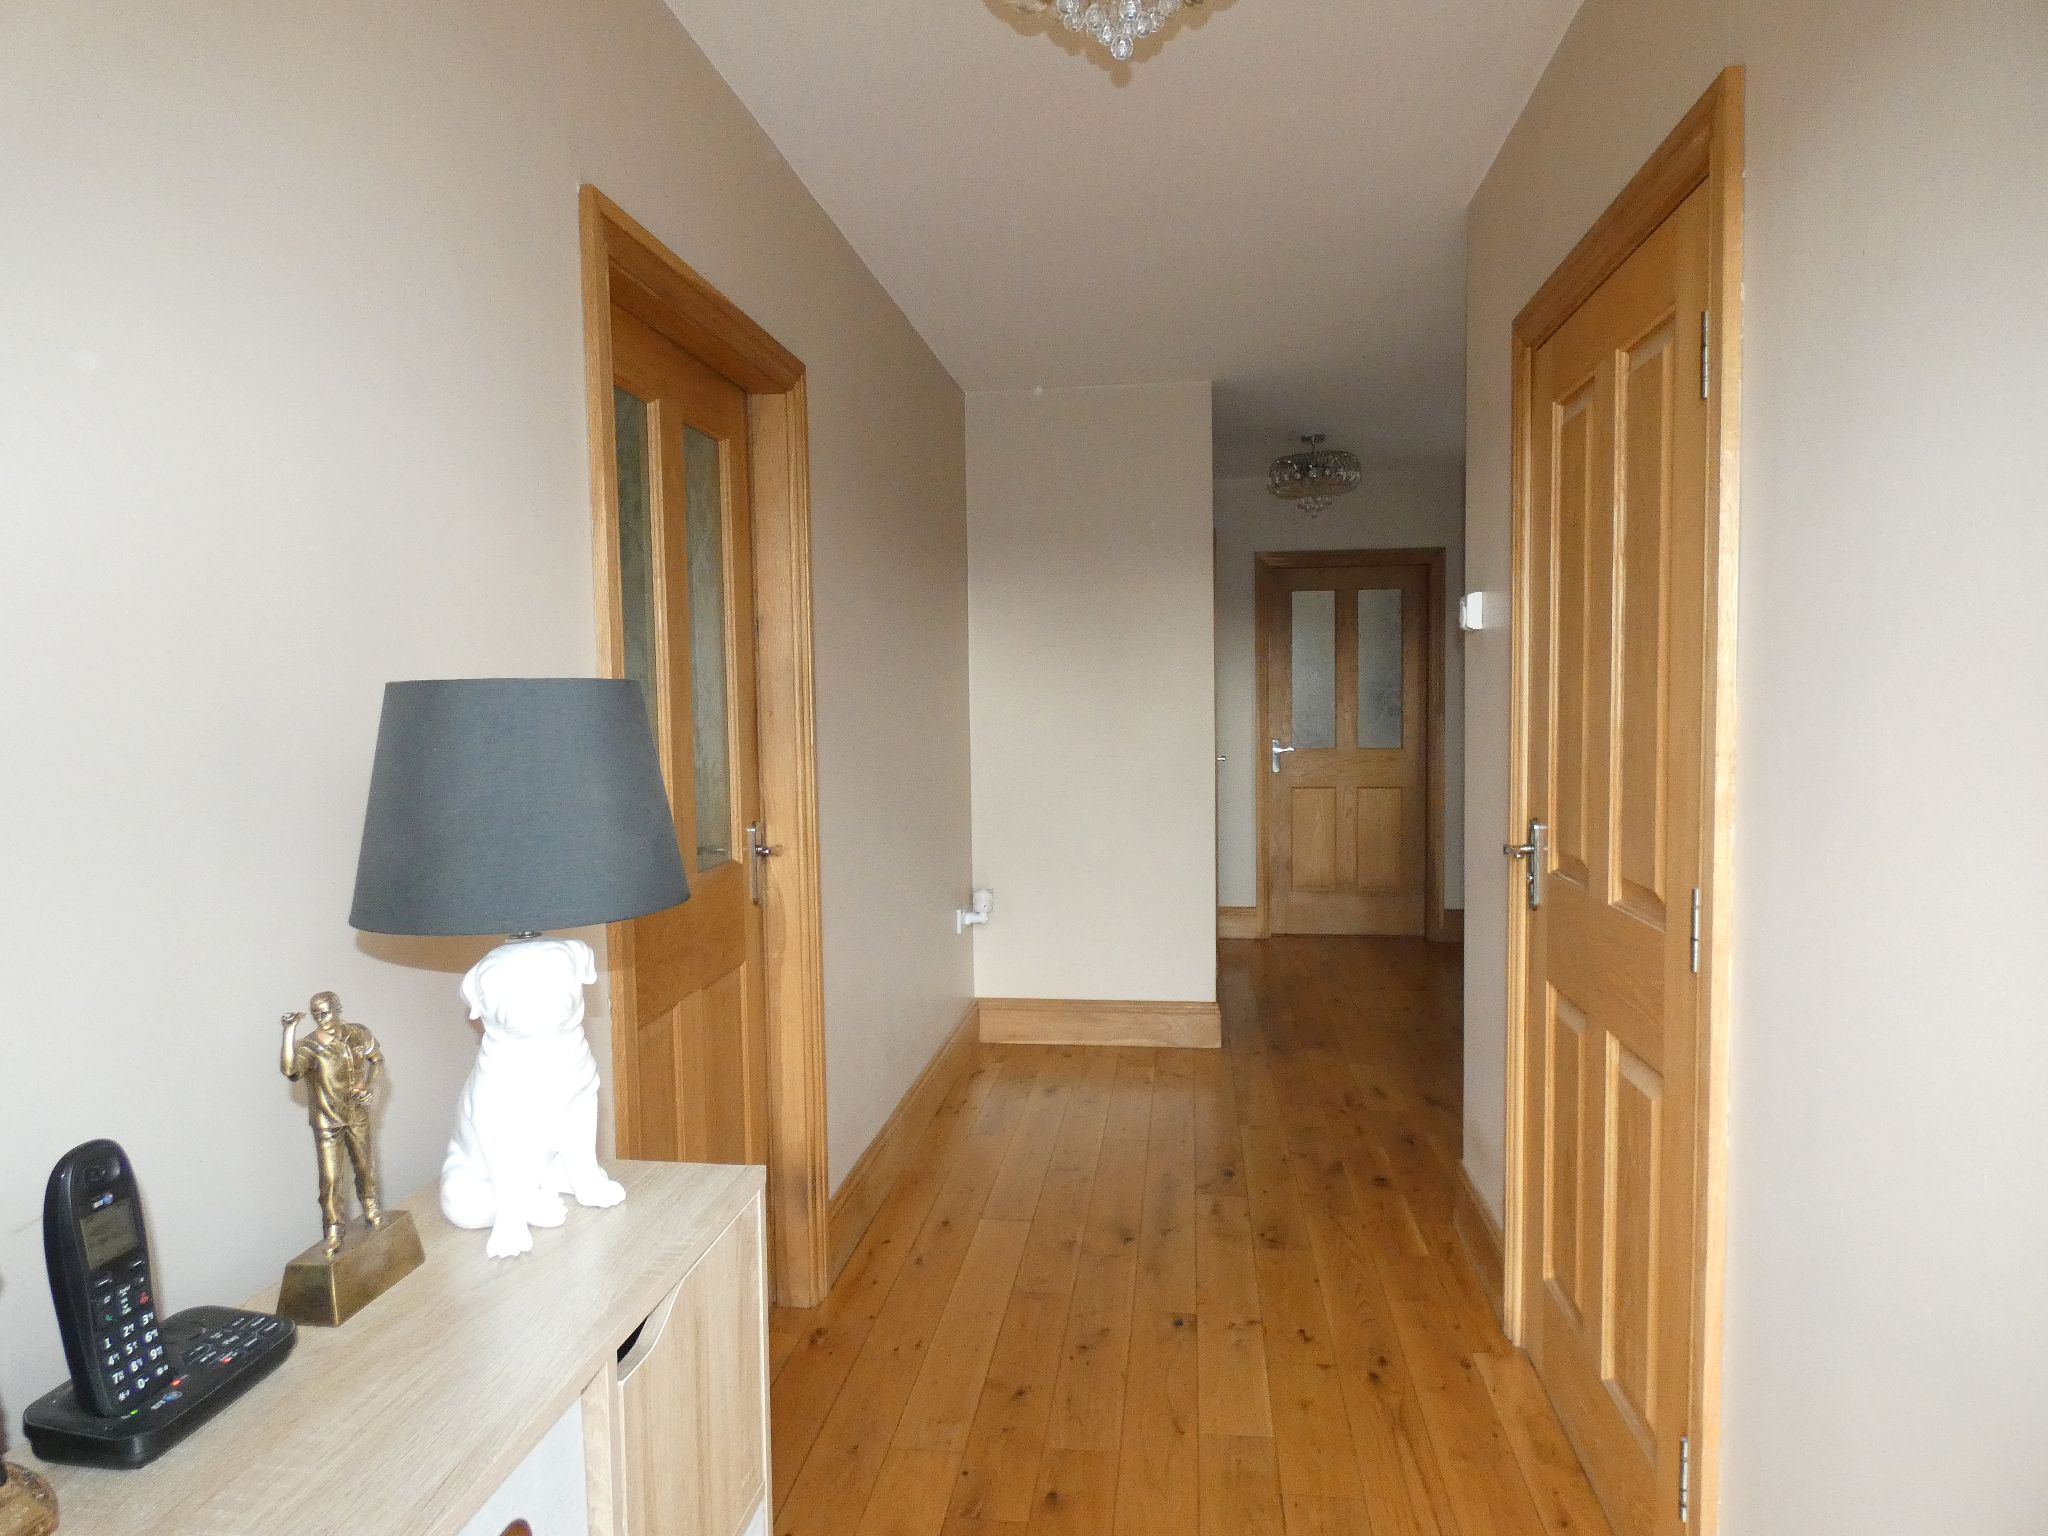 6 bedroom detached house For Sale in Bishop Auckland - Hallway.